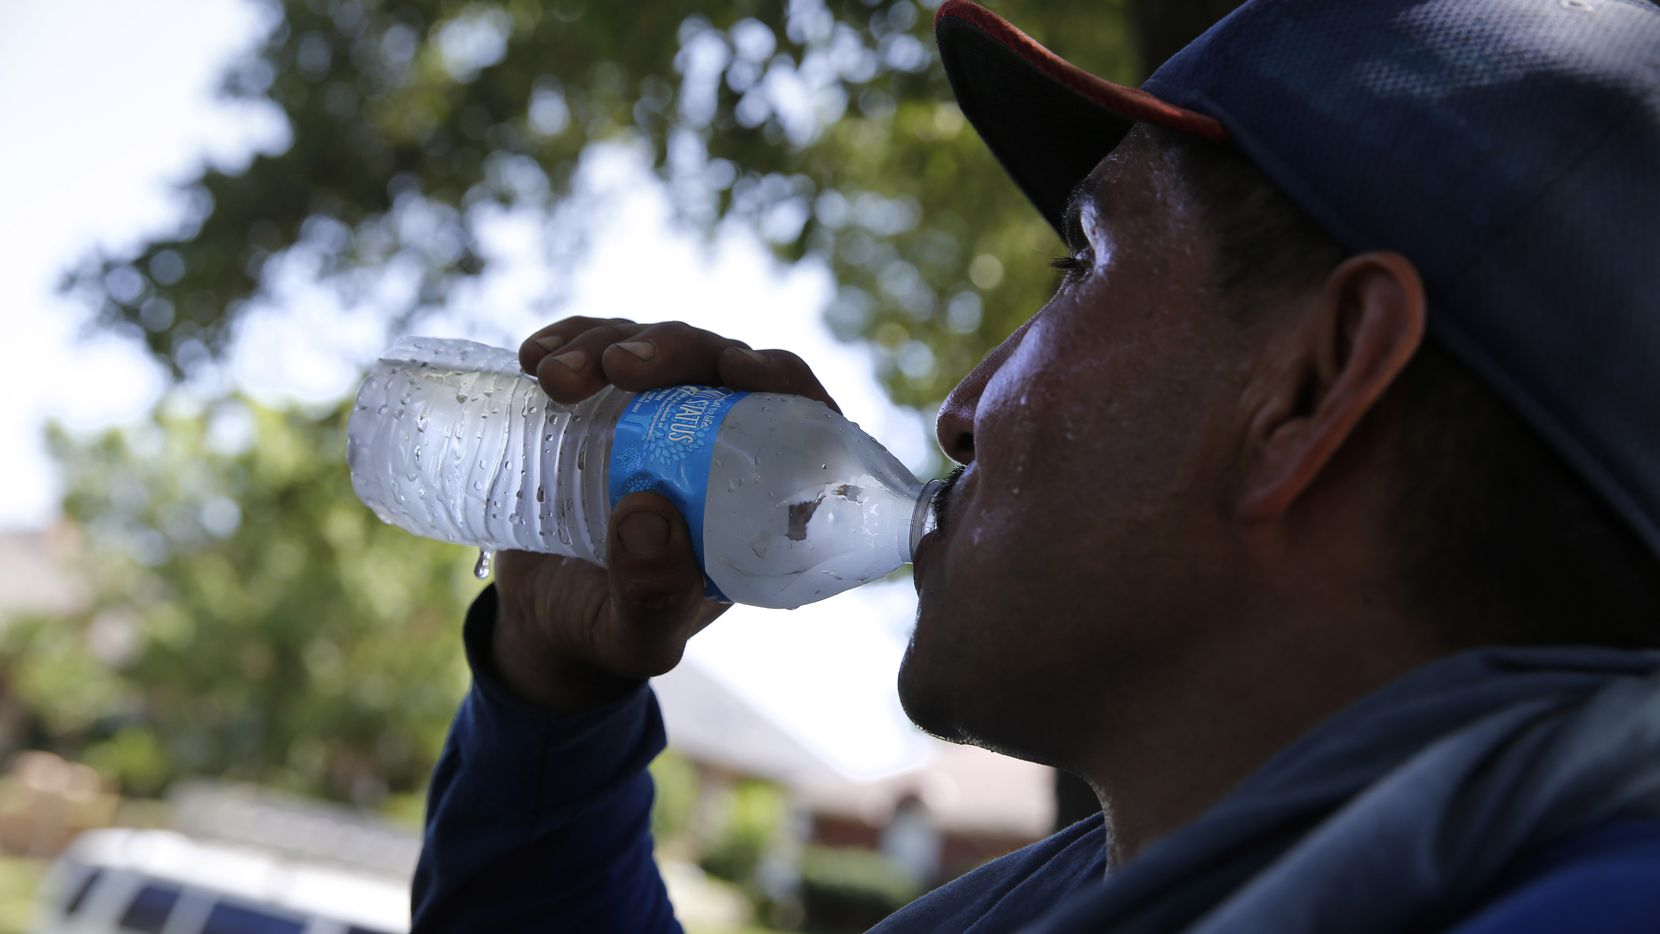 Alejandro Cervantes drinks water on a break as roofer put shingles on a house in Arlington, Texas on July 19, 2018.